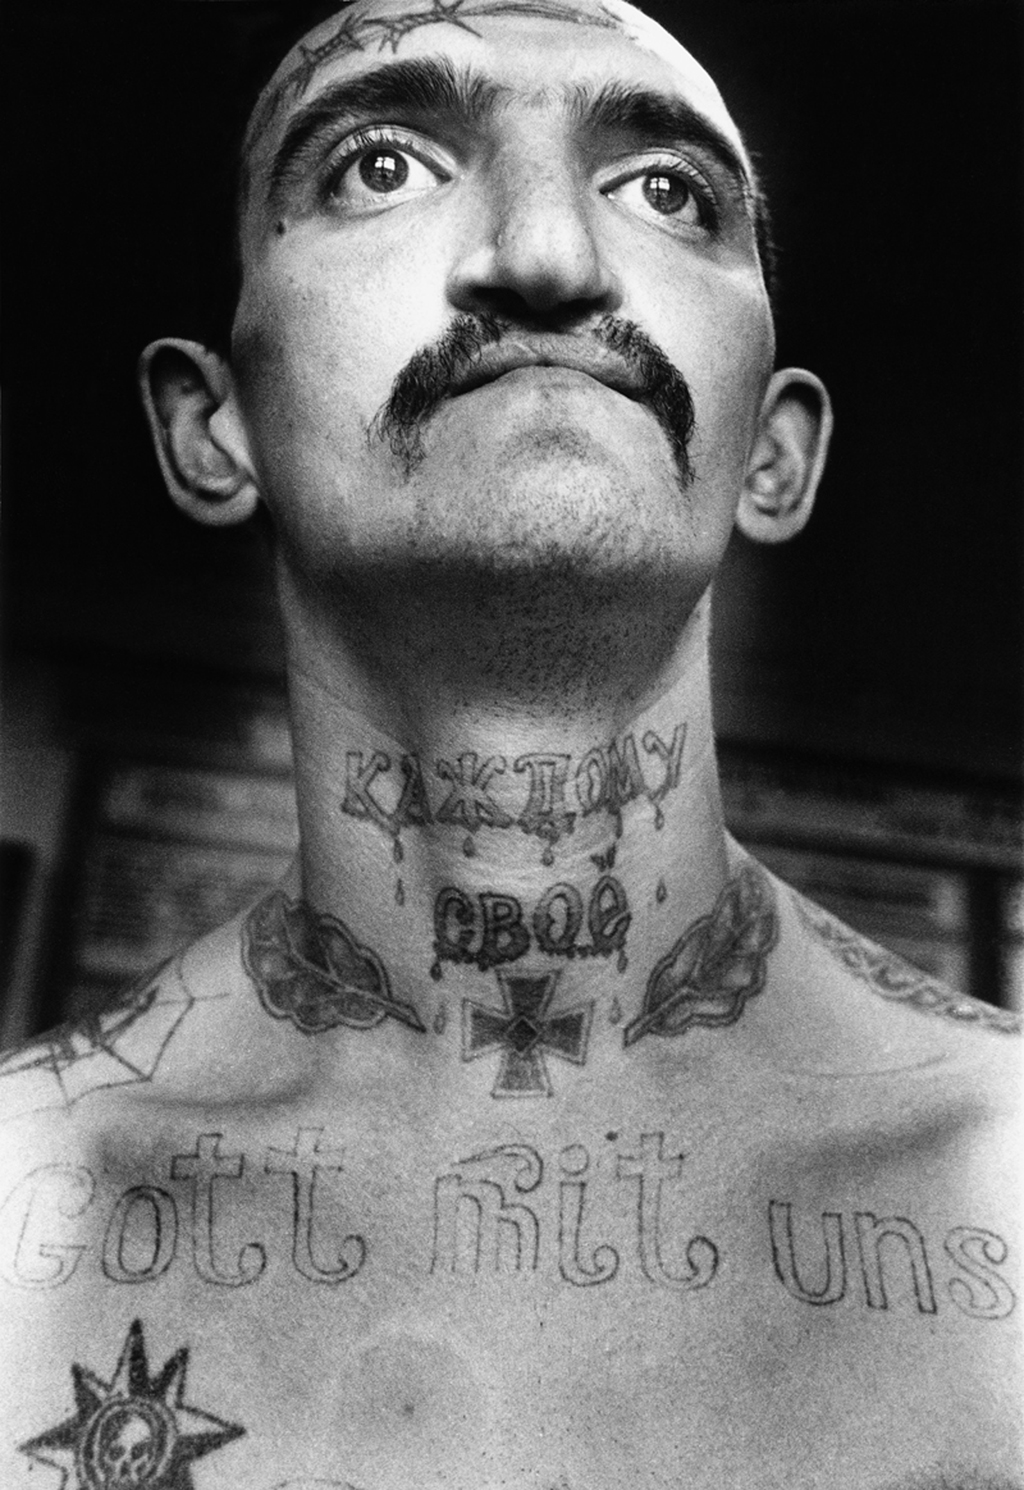 This inmate was convicted for drug related crimes. 'Gott mit uns': 'God with us' was a rallying cry of both the Russian empire and the Third Reich. The Nazi Iron Cross expresses 'I don't care about anybody'. This symbol of aggression and insubordination is often tattooed on the chest tattooed as if hung on a chain. The barbed wore on the forehead denotes that the bearer 'will never be corrected'.